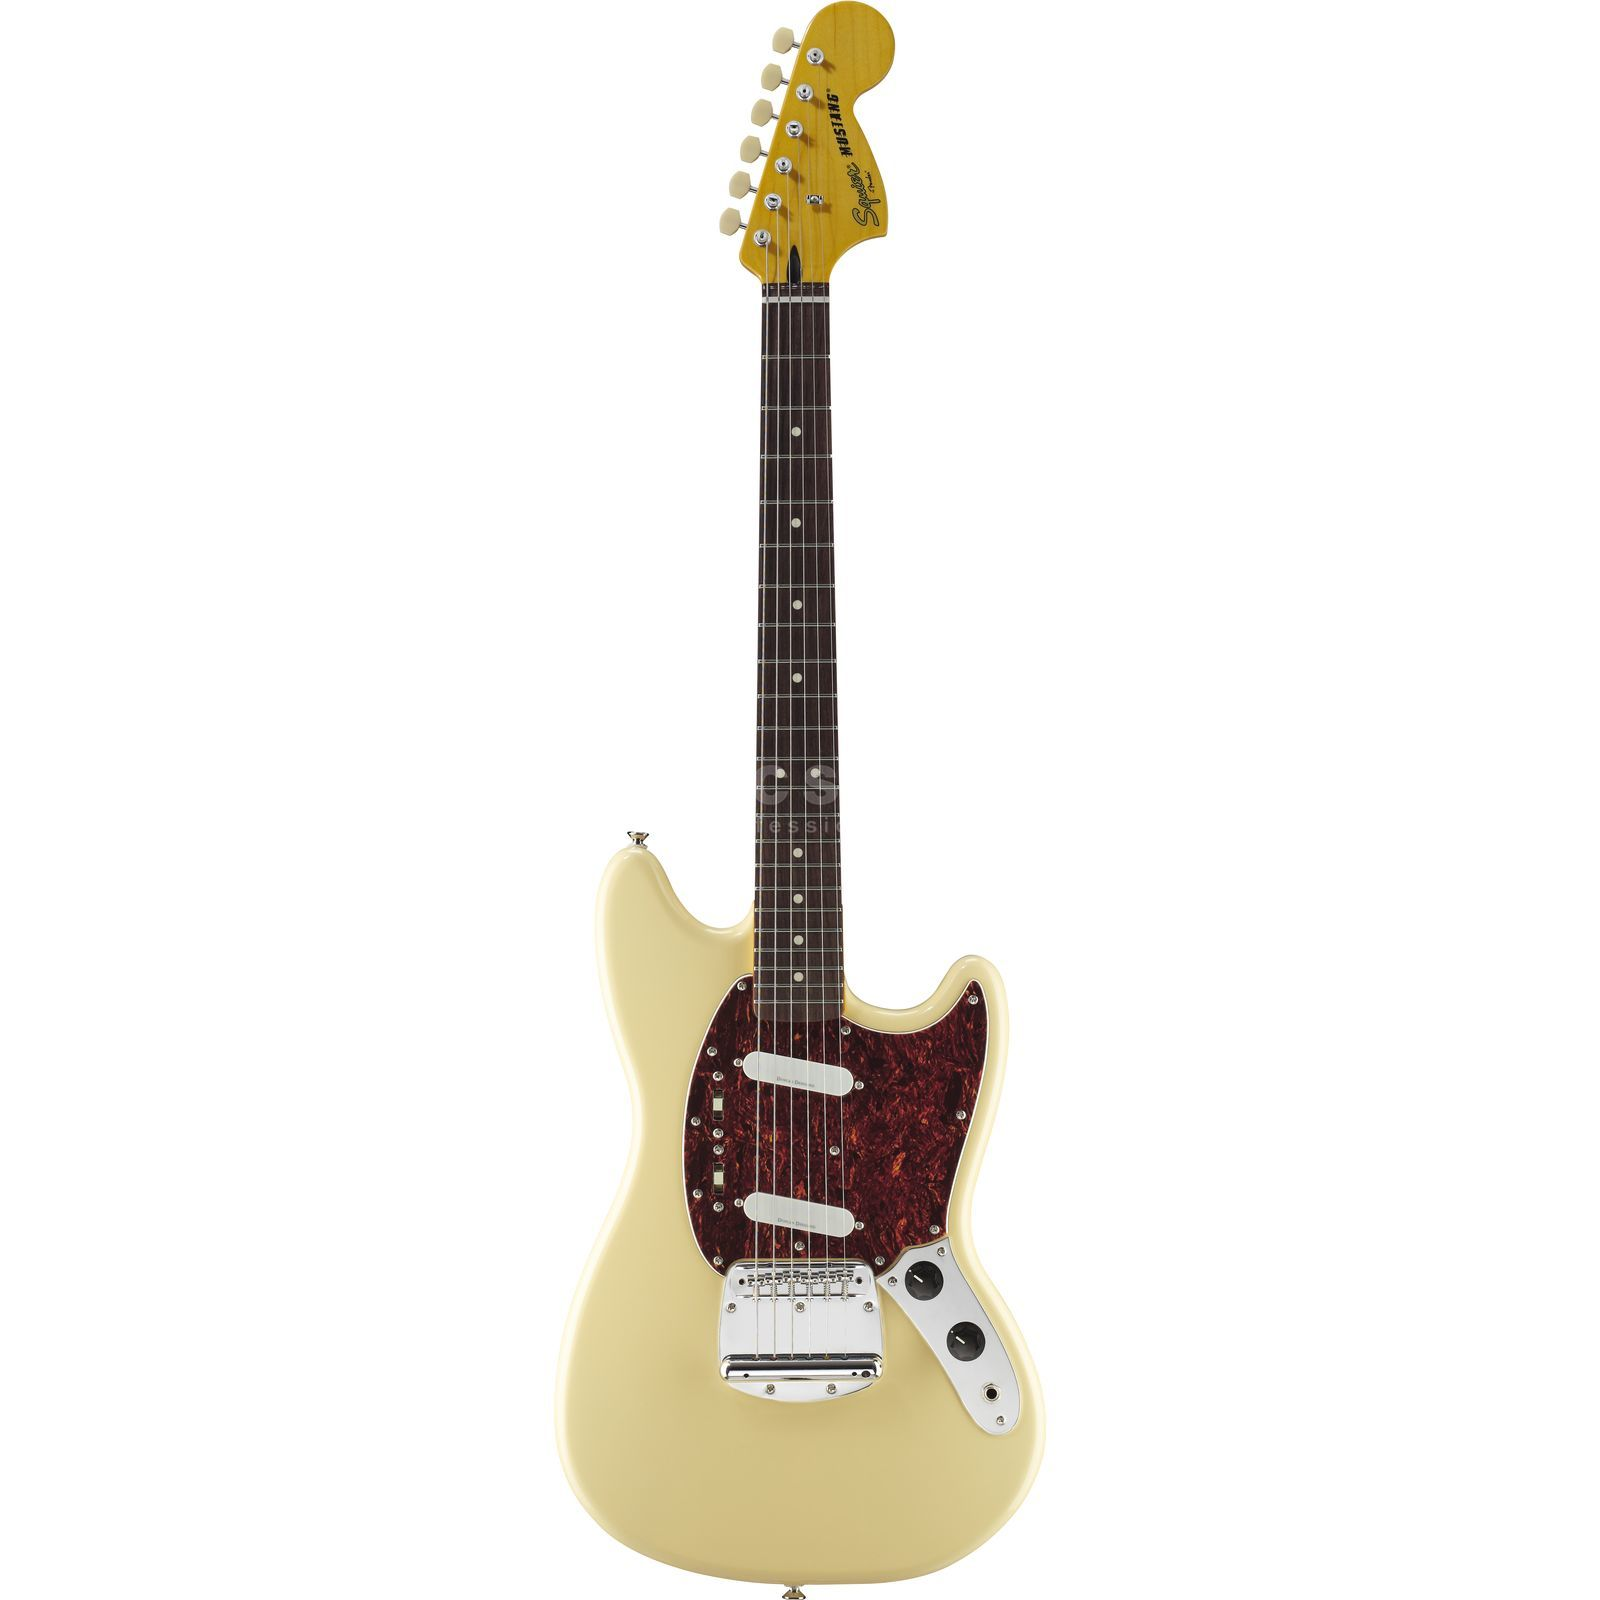 Fender Squier Vintage Modified Mustang RW Vintage White Produktbild